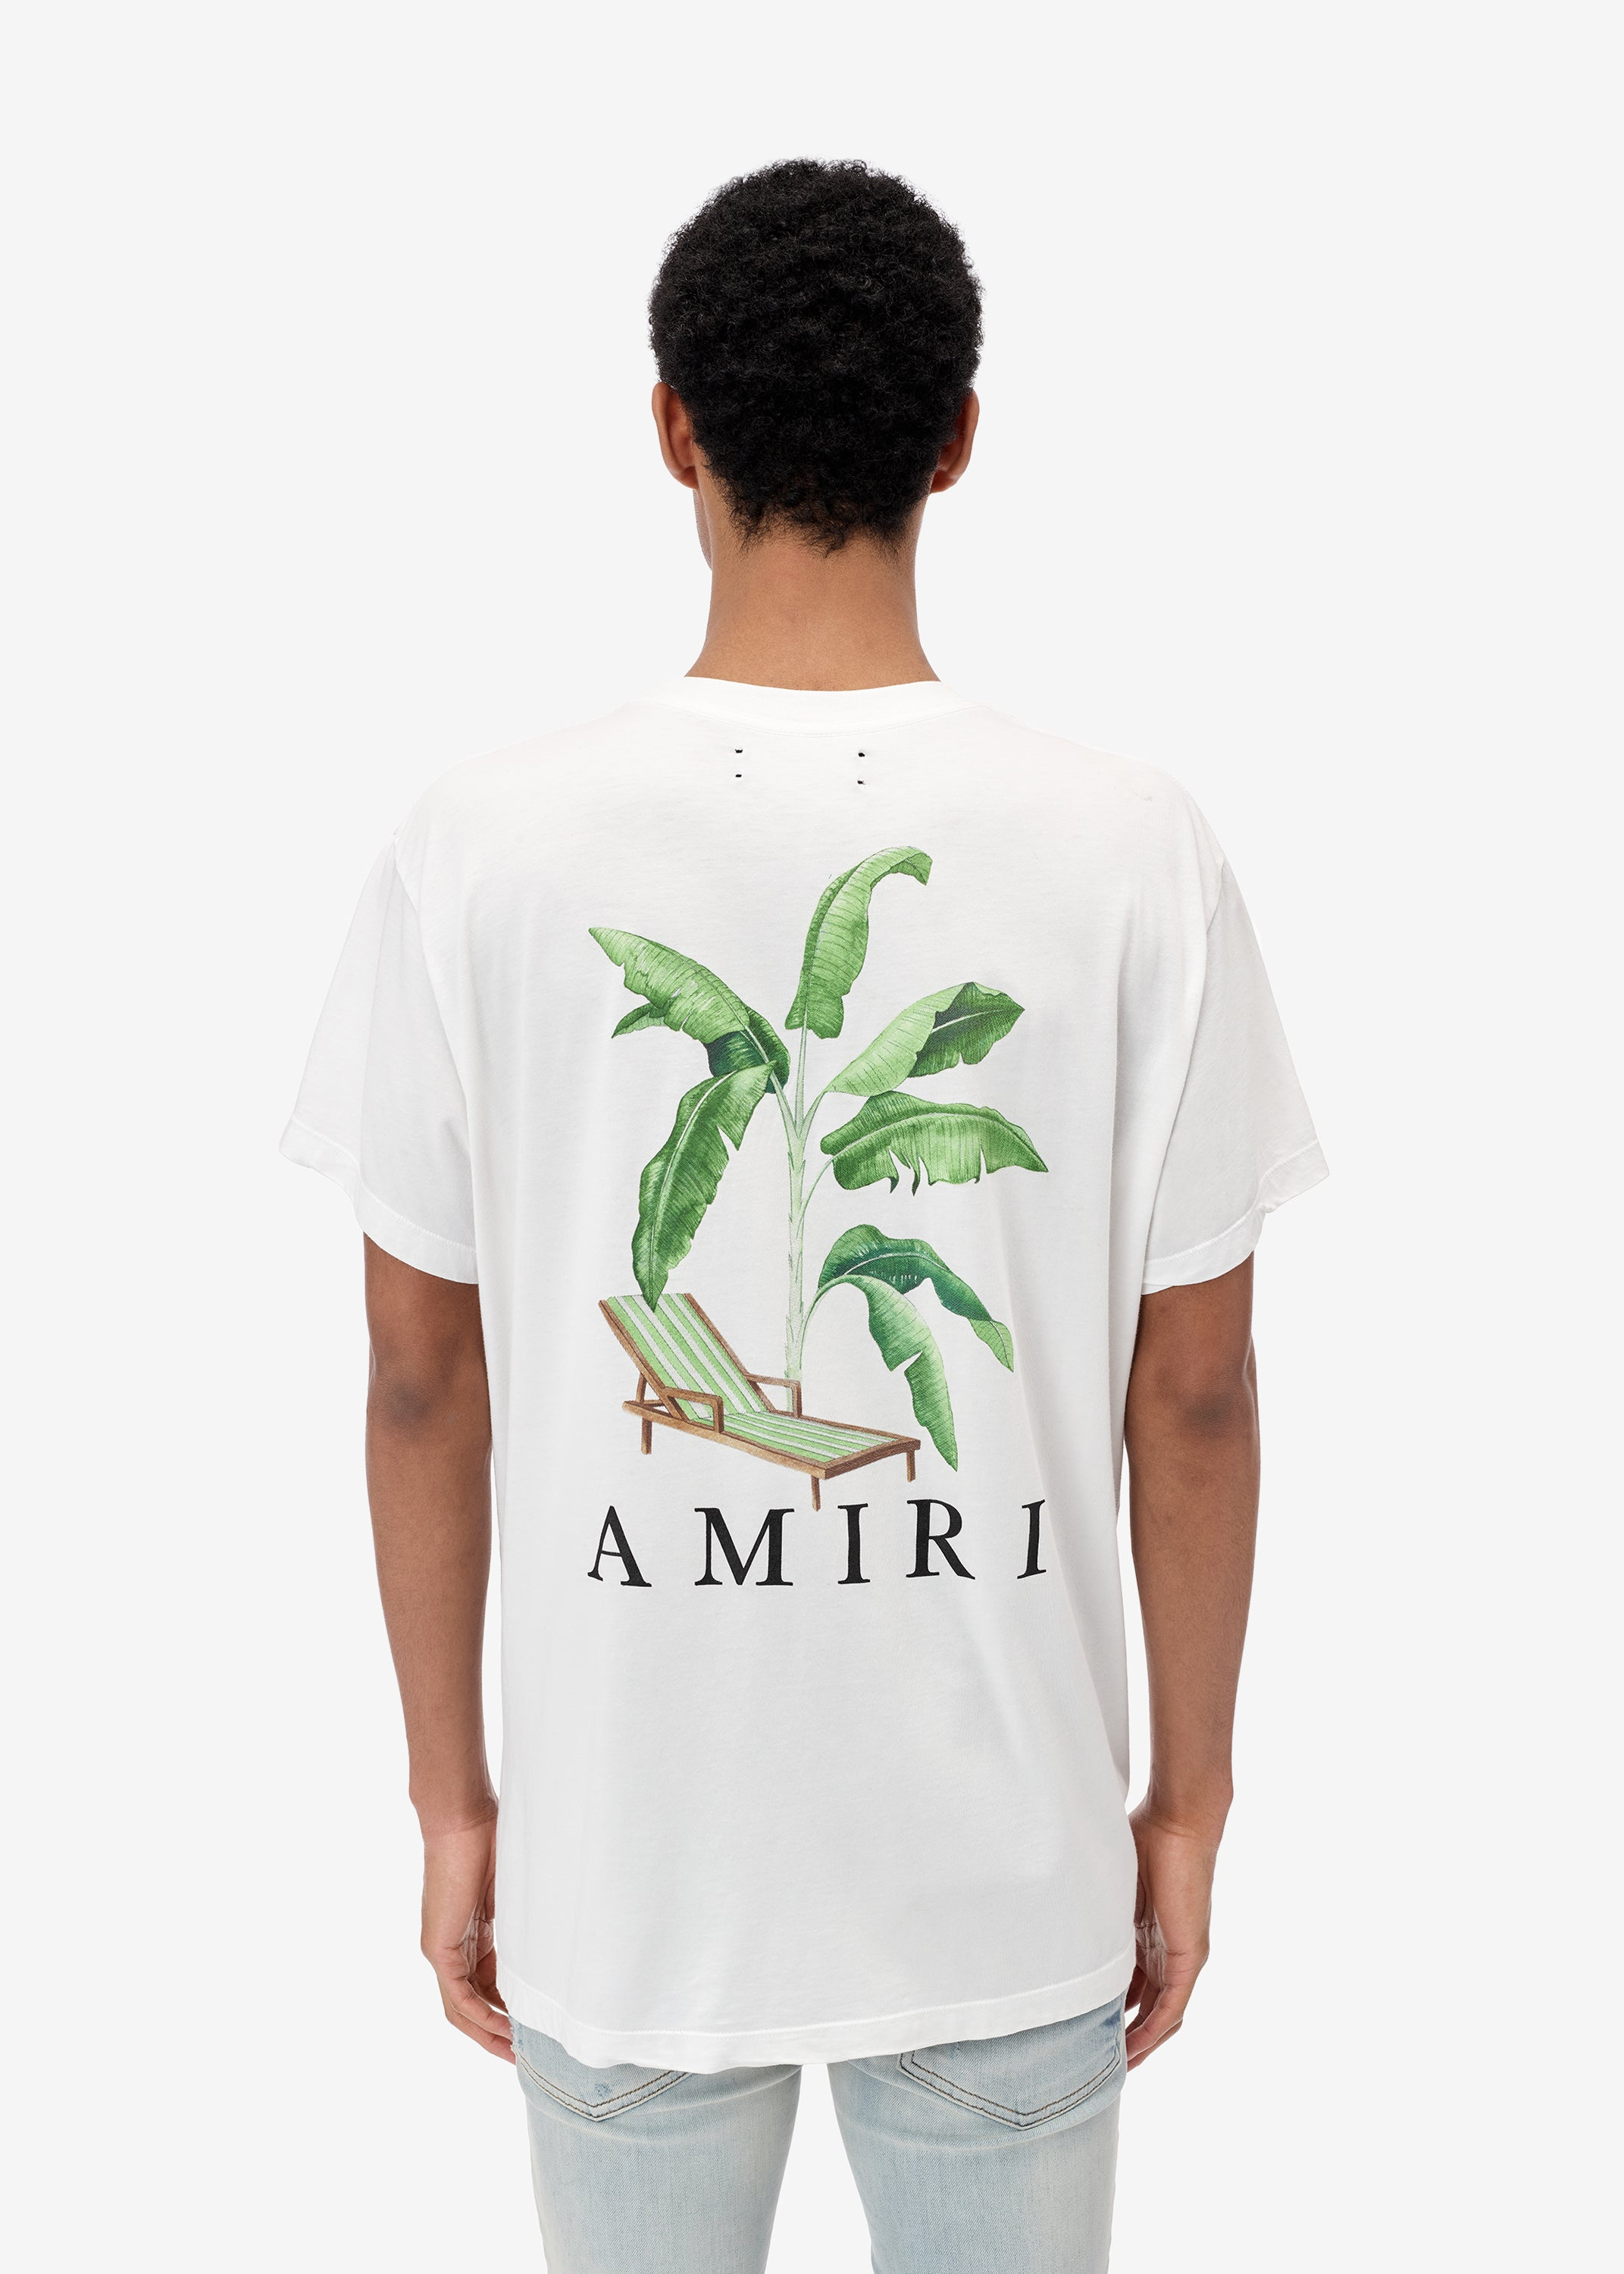 banana-tree-tee-white-image-3